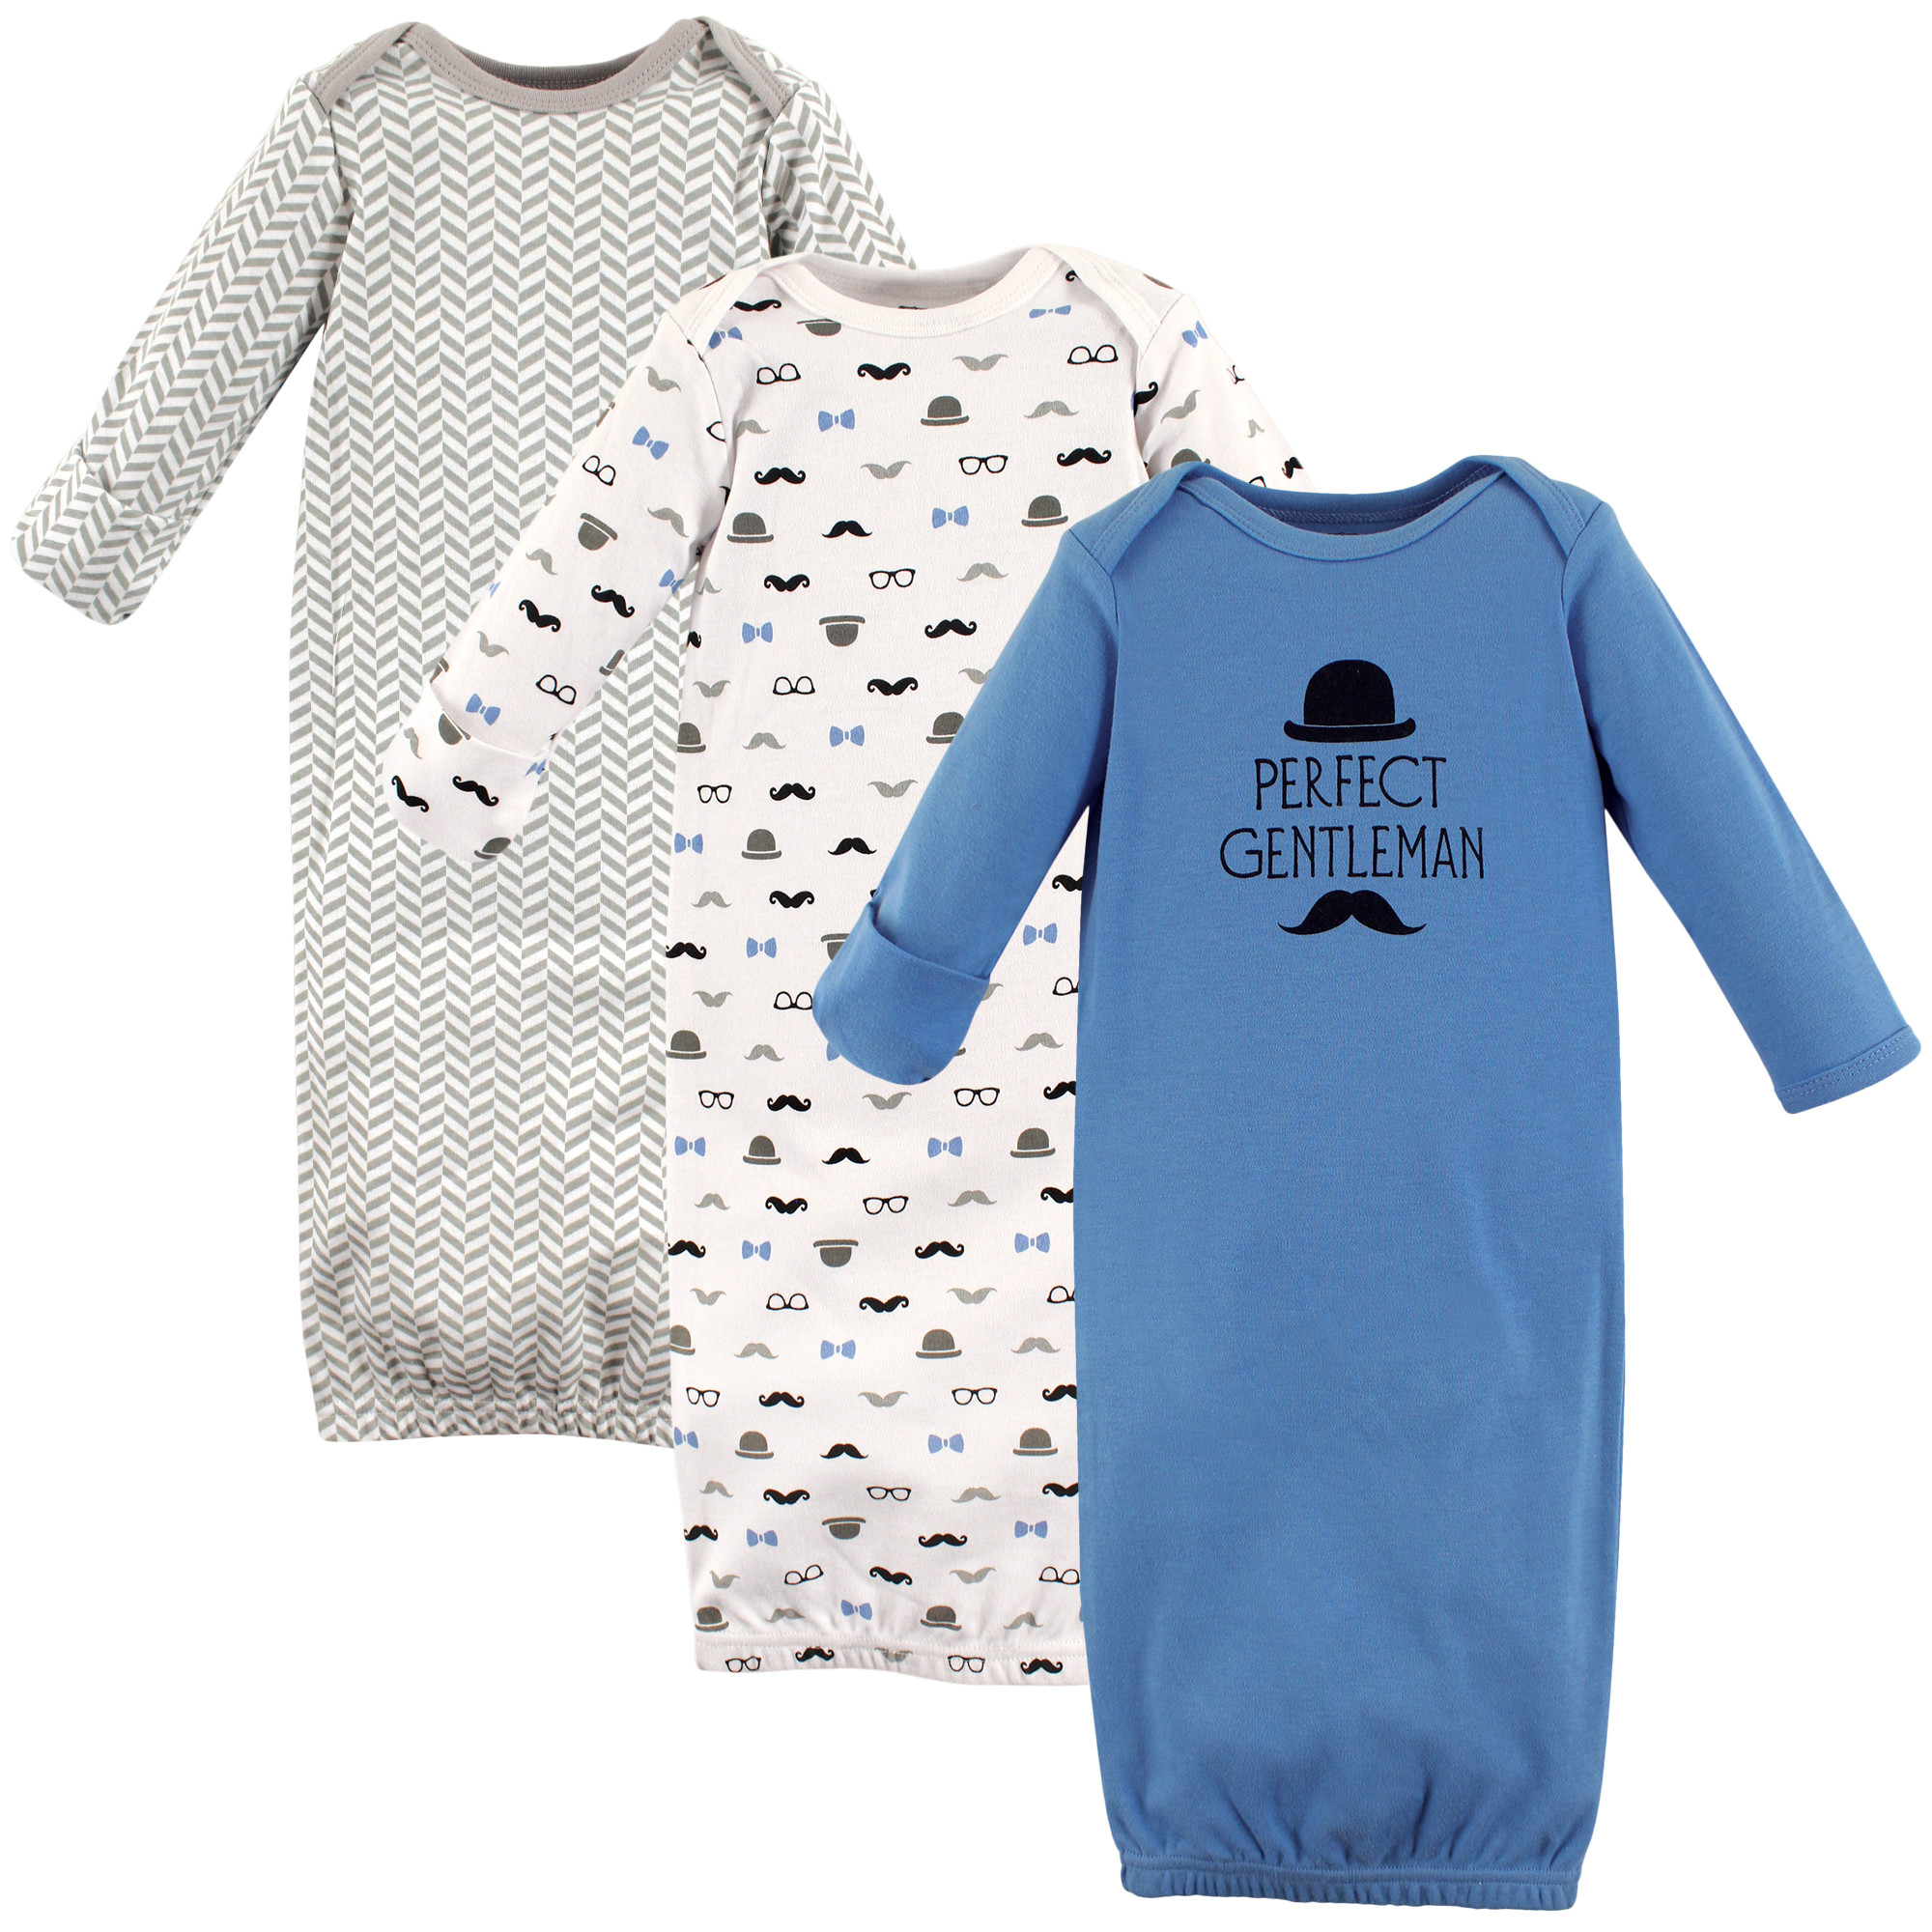 Hudson baby | Clothing | Sleeping gowns | Affordable Infant Clothing